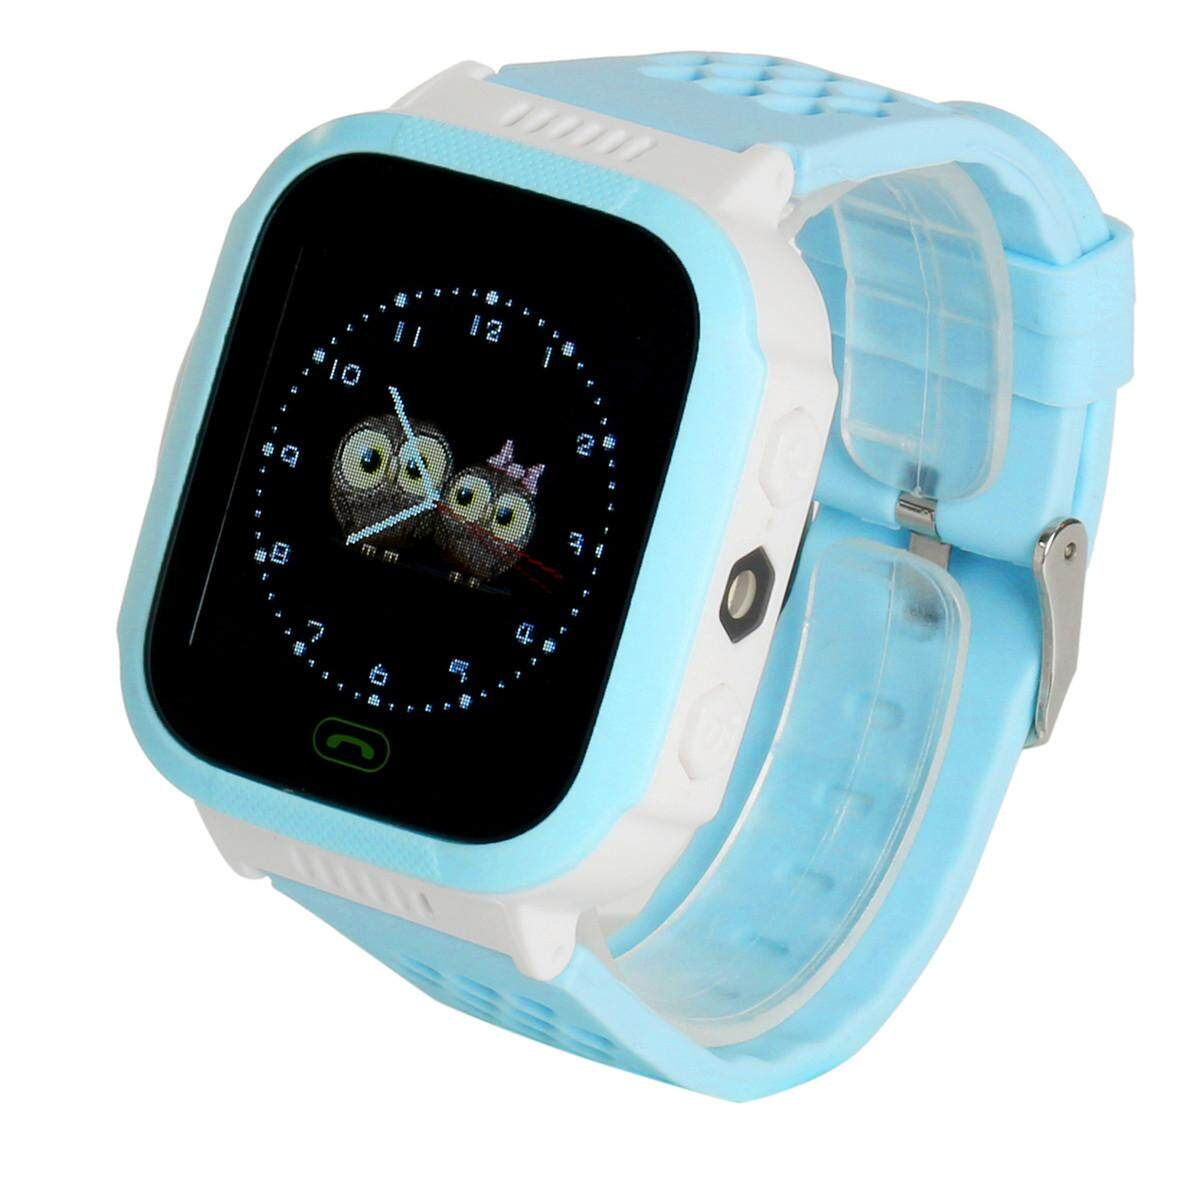 Beli Anti Lost Children Kids Gps Tracker Sos Call Smart Wrist Watch Phone For Phone Intl Baru